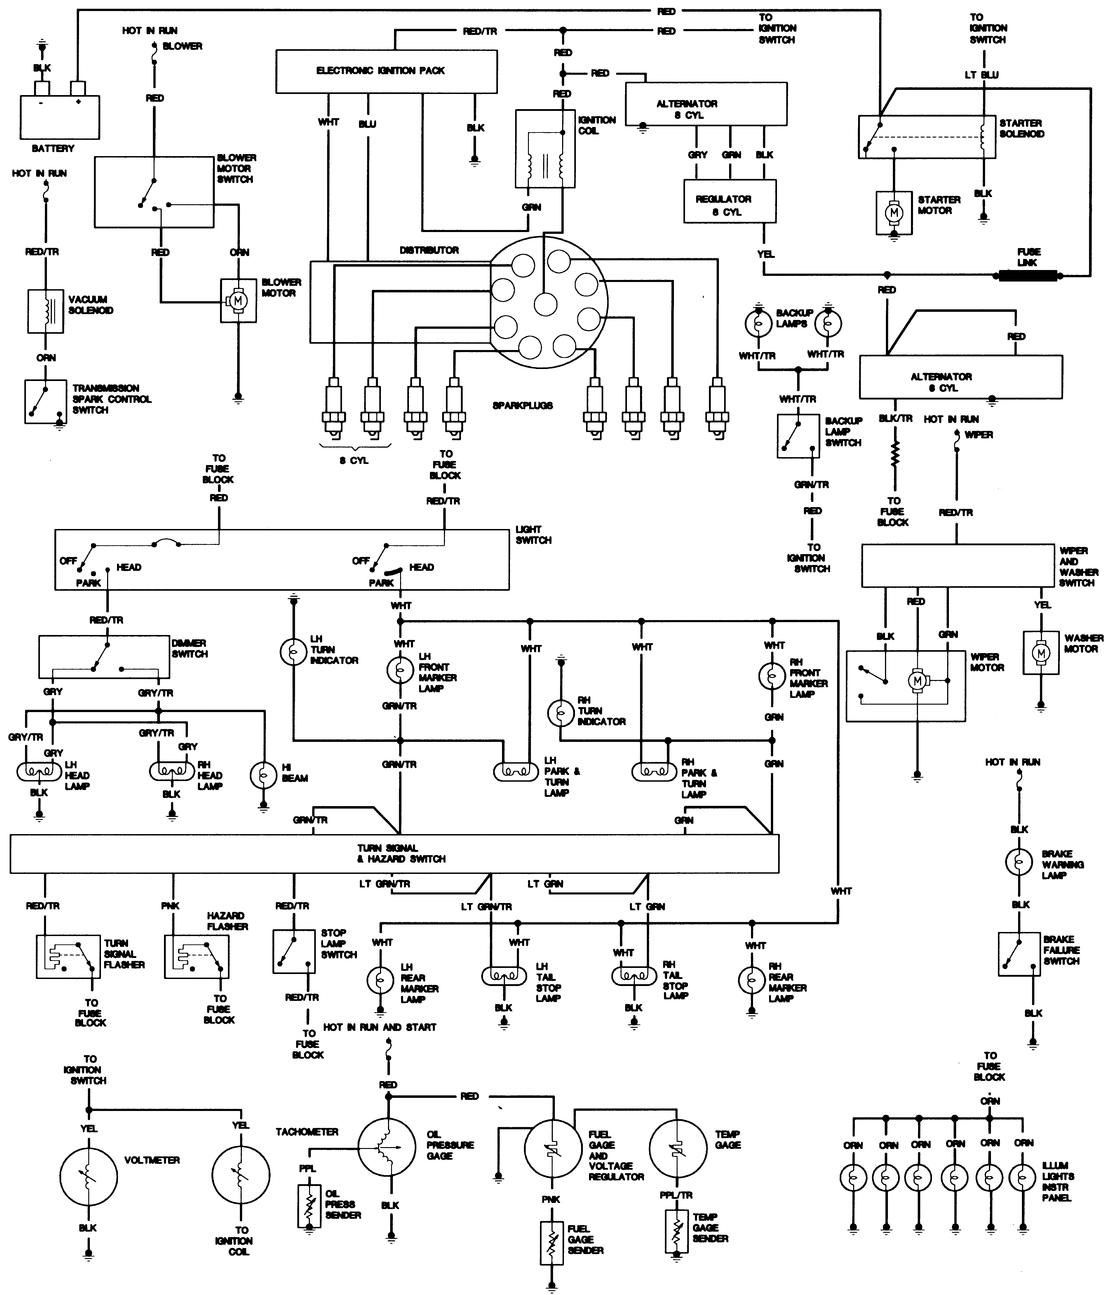 1980 cj5 wiring diagram furthermore jeep cj7 tachometer wiring 1980 cj5 wiring schematic for [ 1111 x 1295 Pixel ]